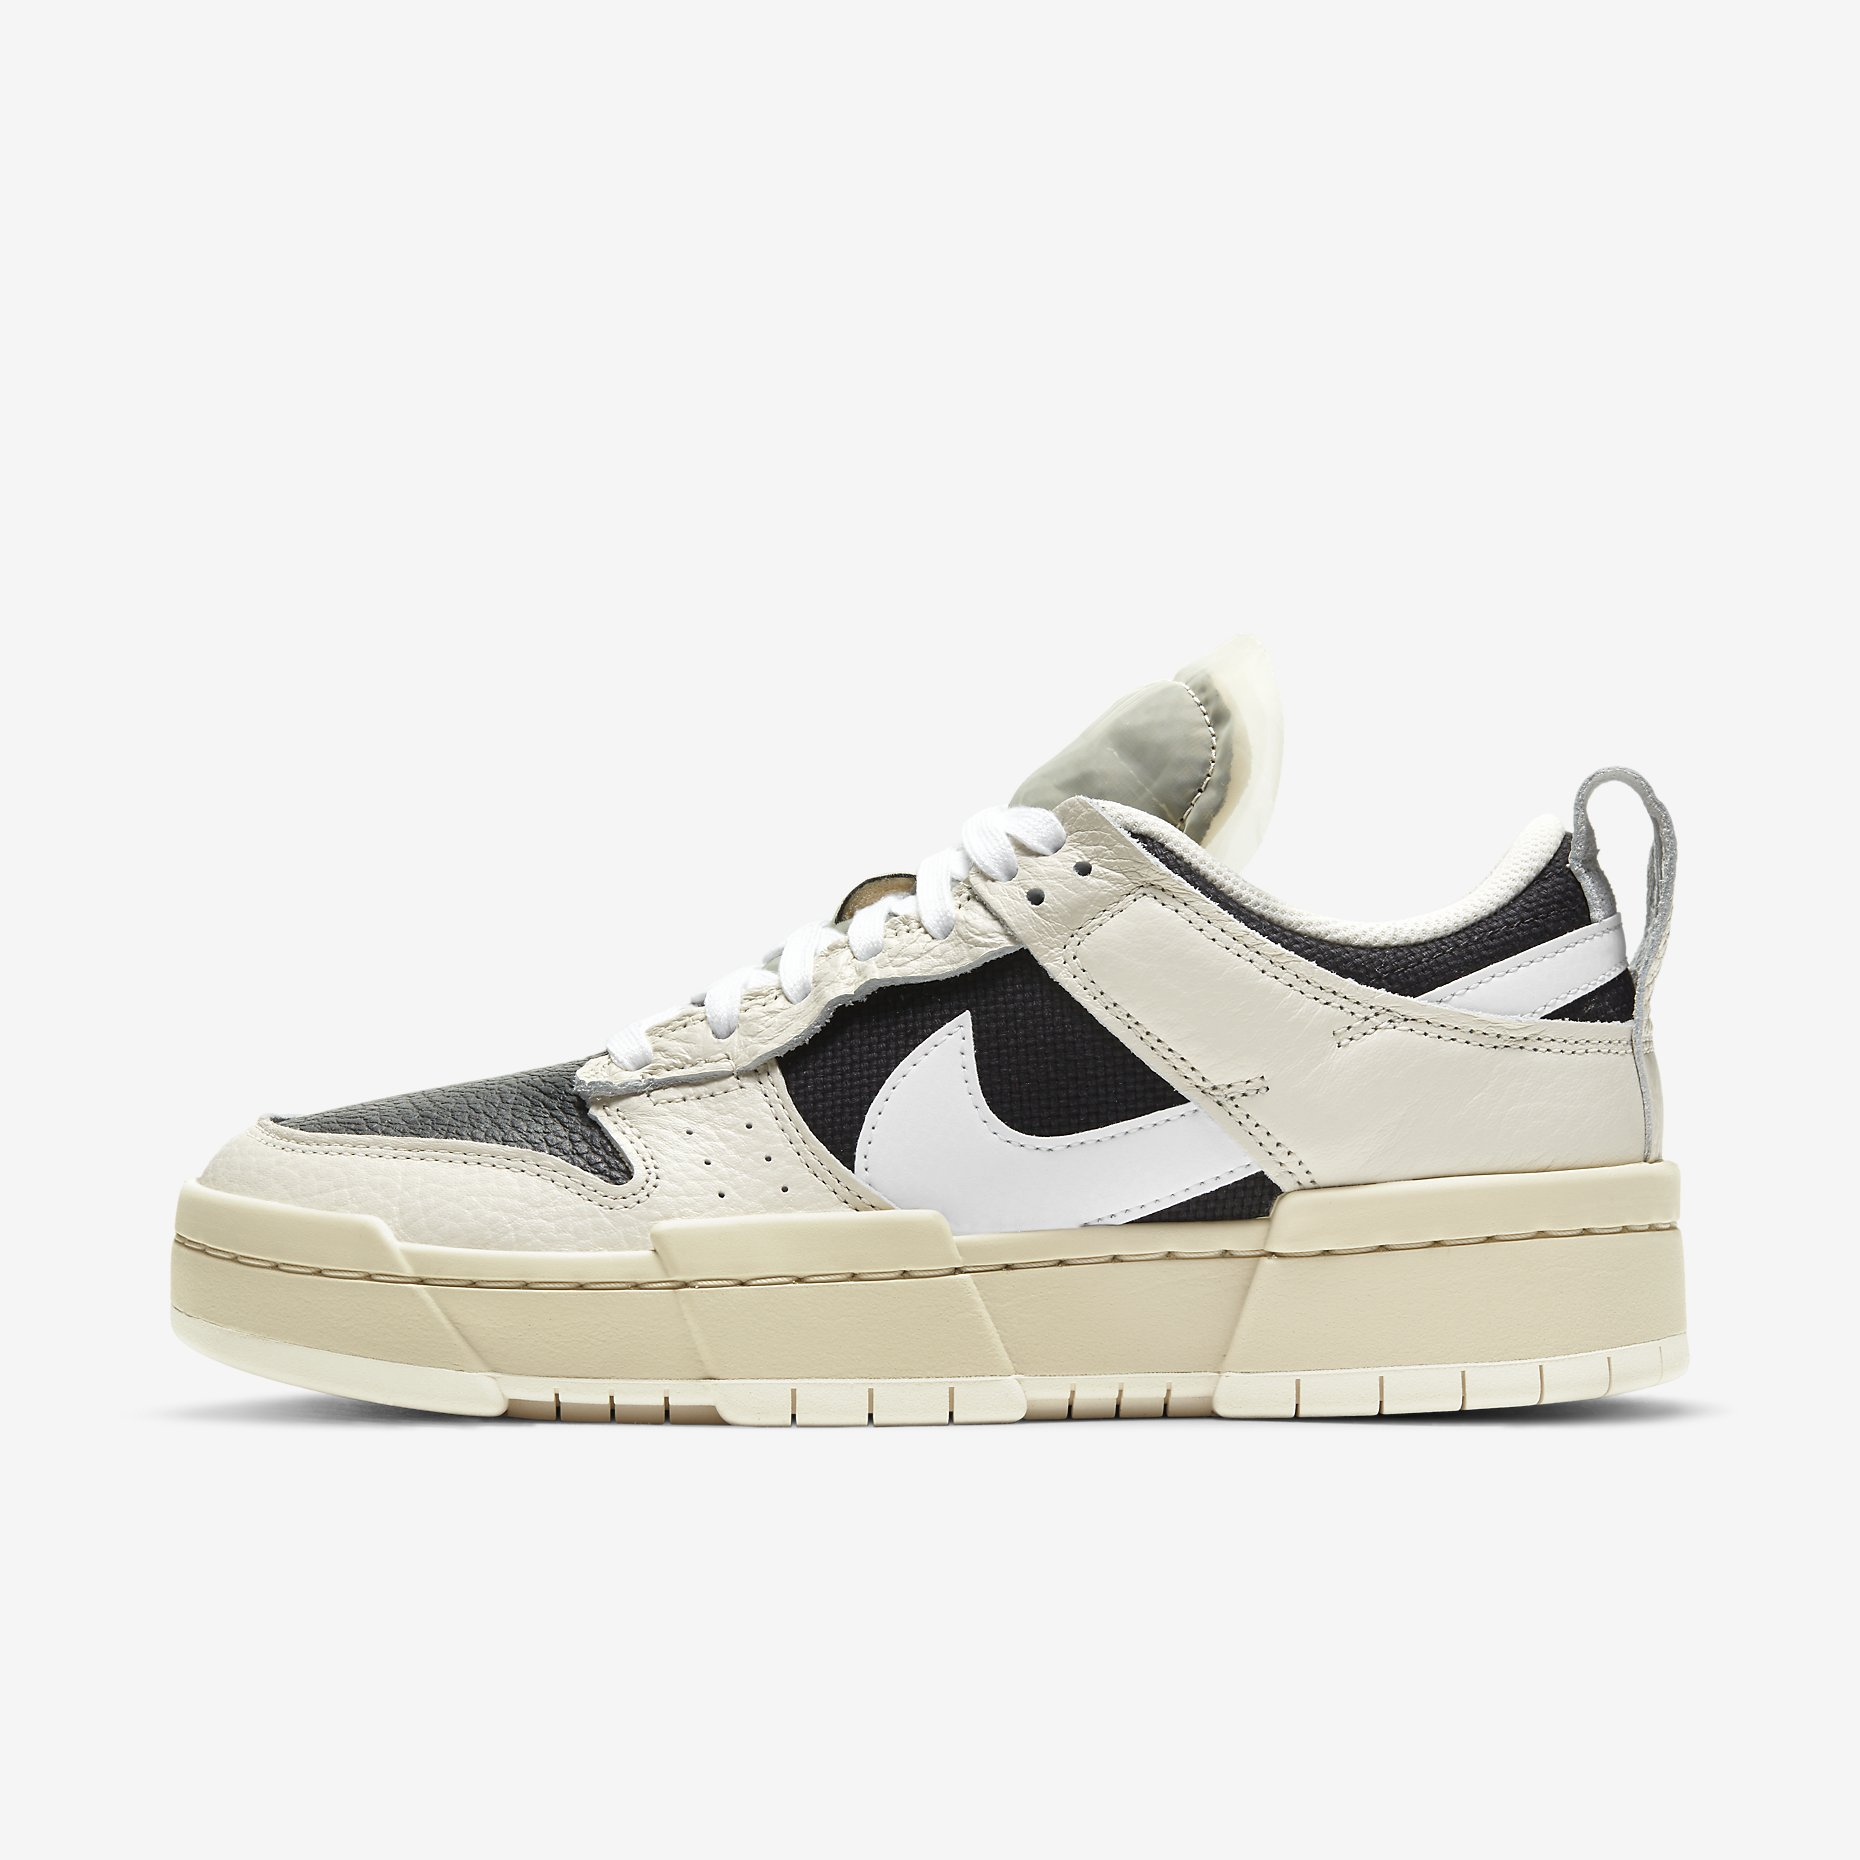 Women's Nike Dunk Low Disrupt 'Pale Ivory'}